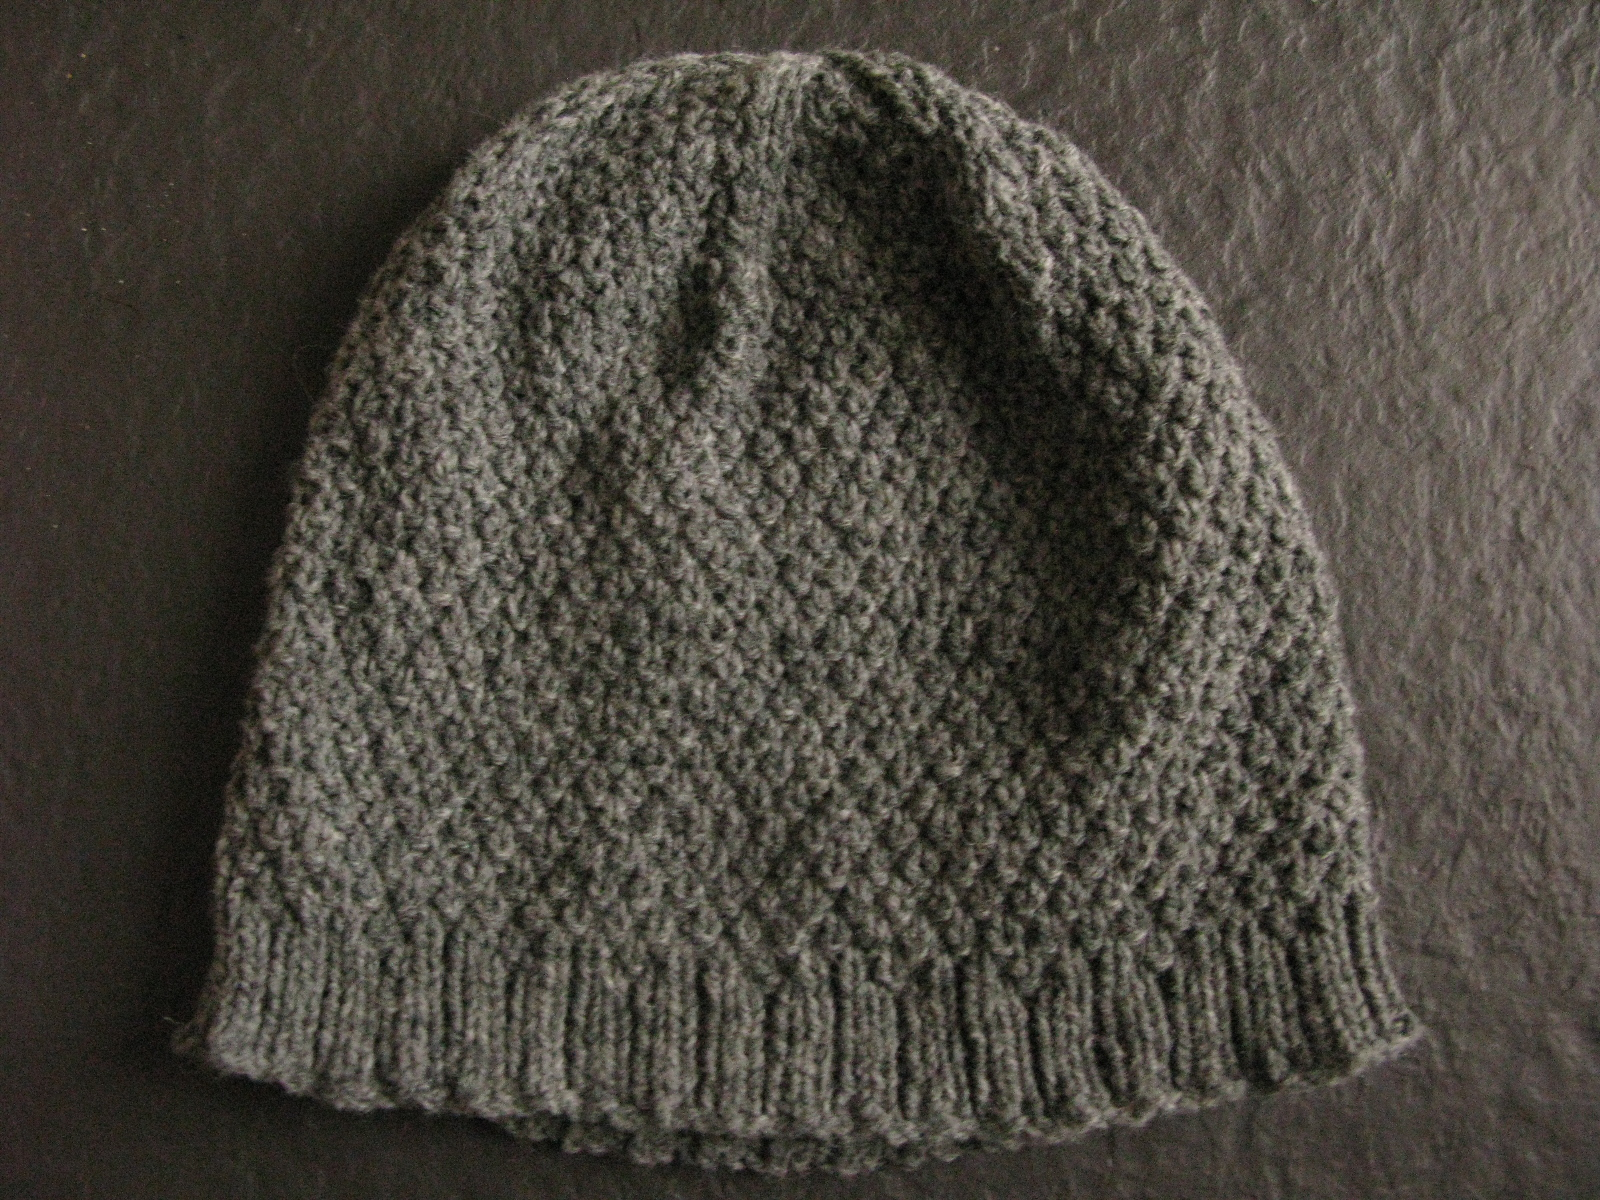 Knitting Double Moss Stitch Instructions : littletheorem: Asterisk Hat